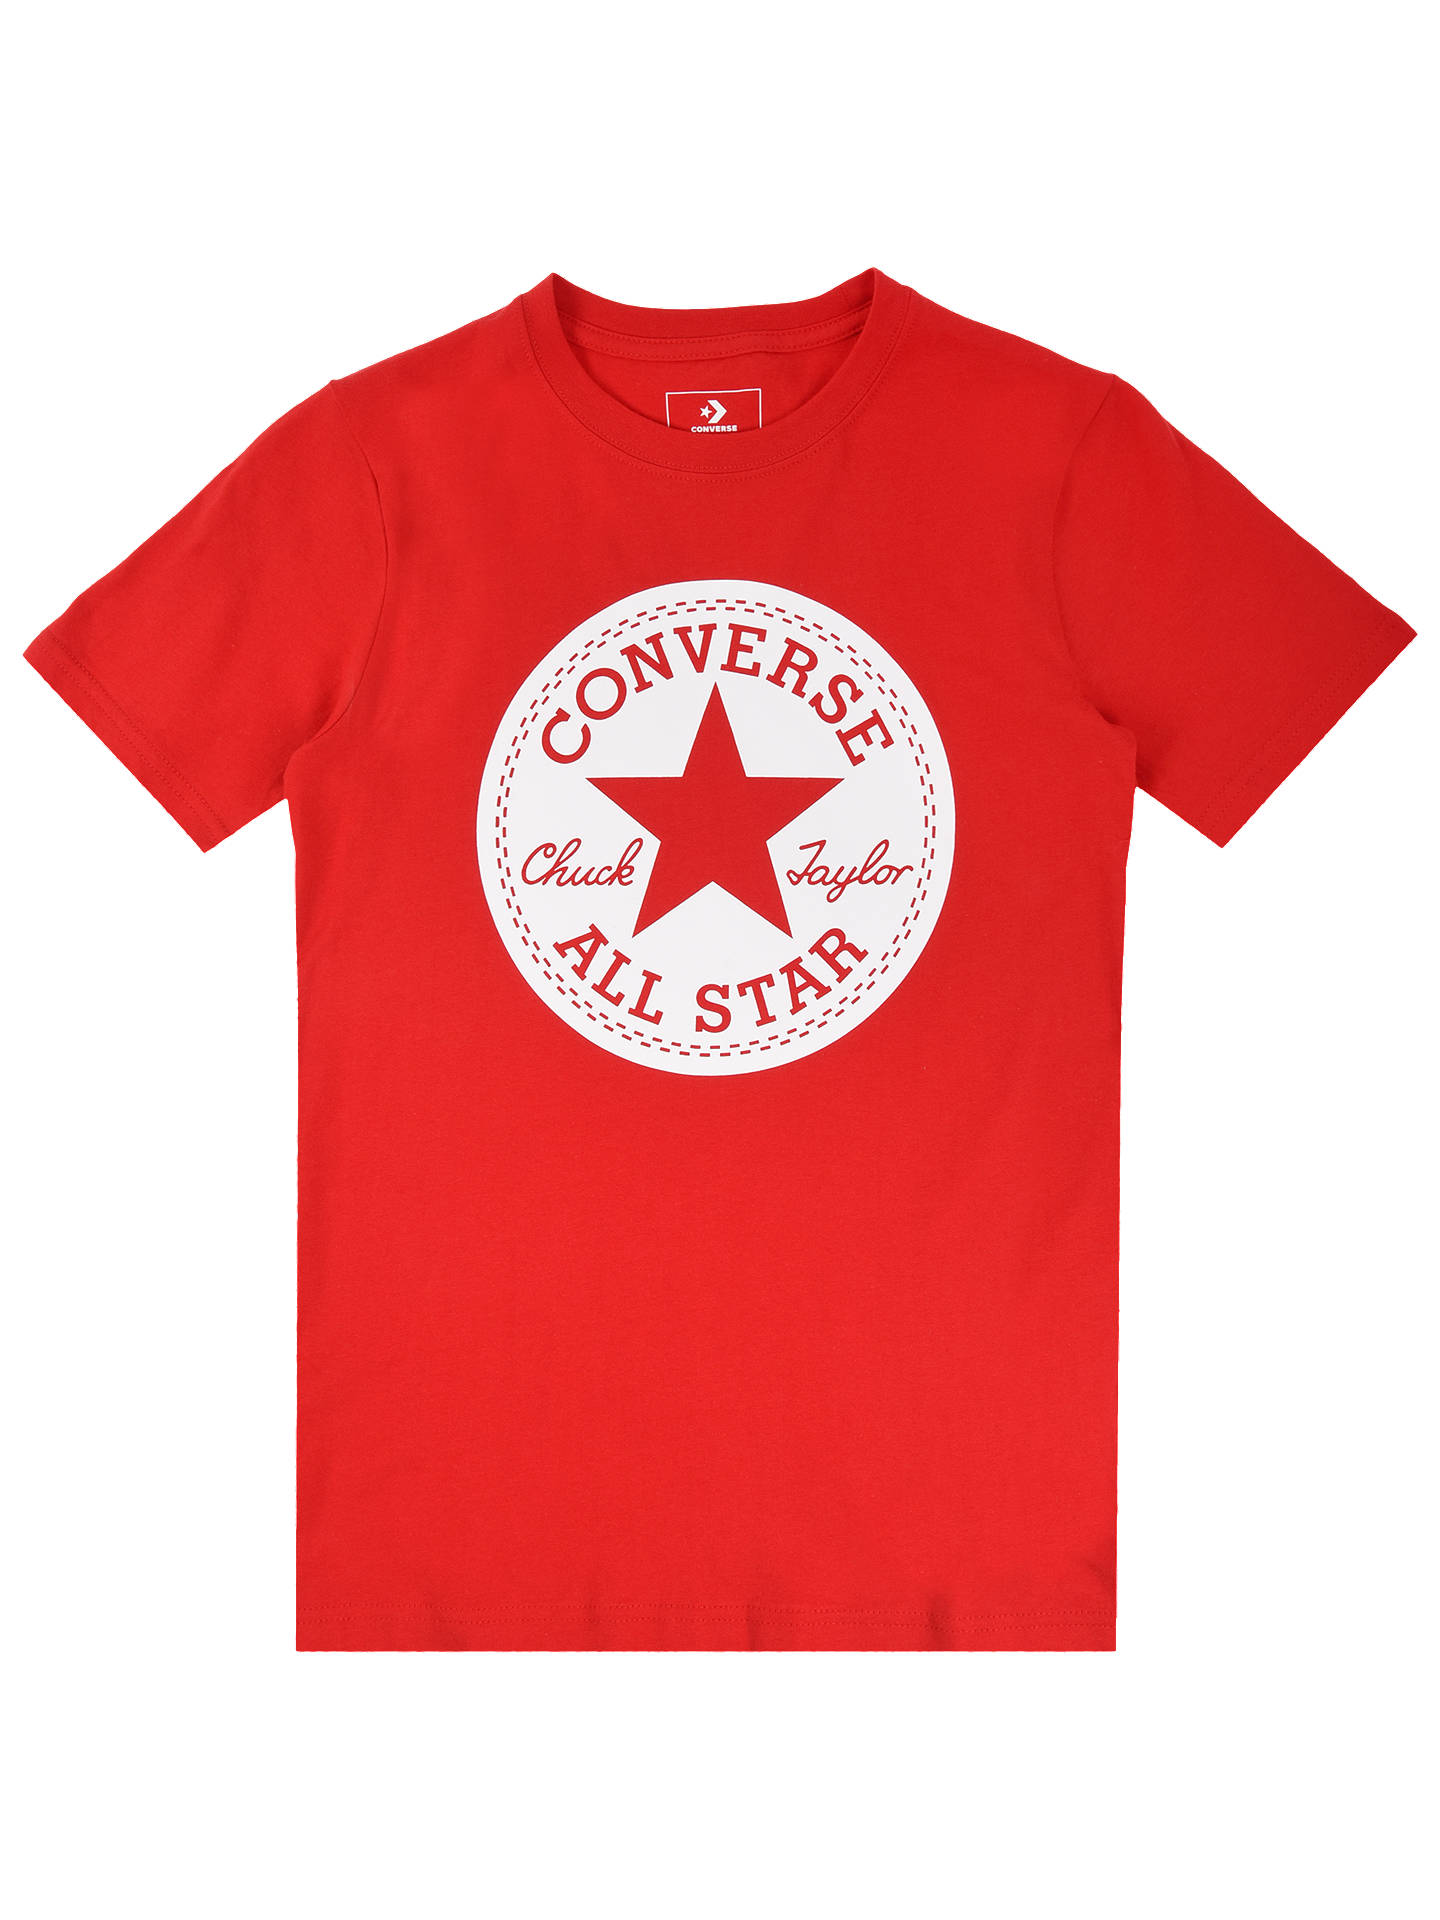 tee shirt all star converse